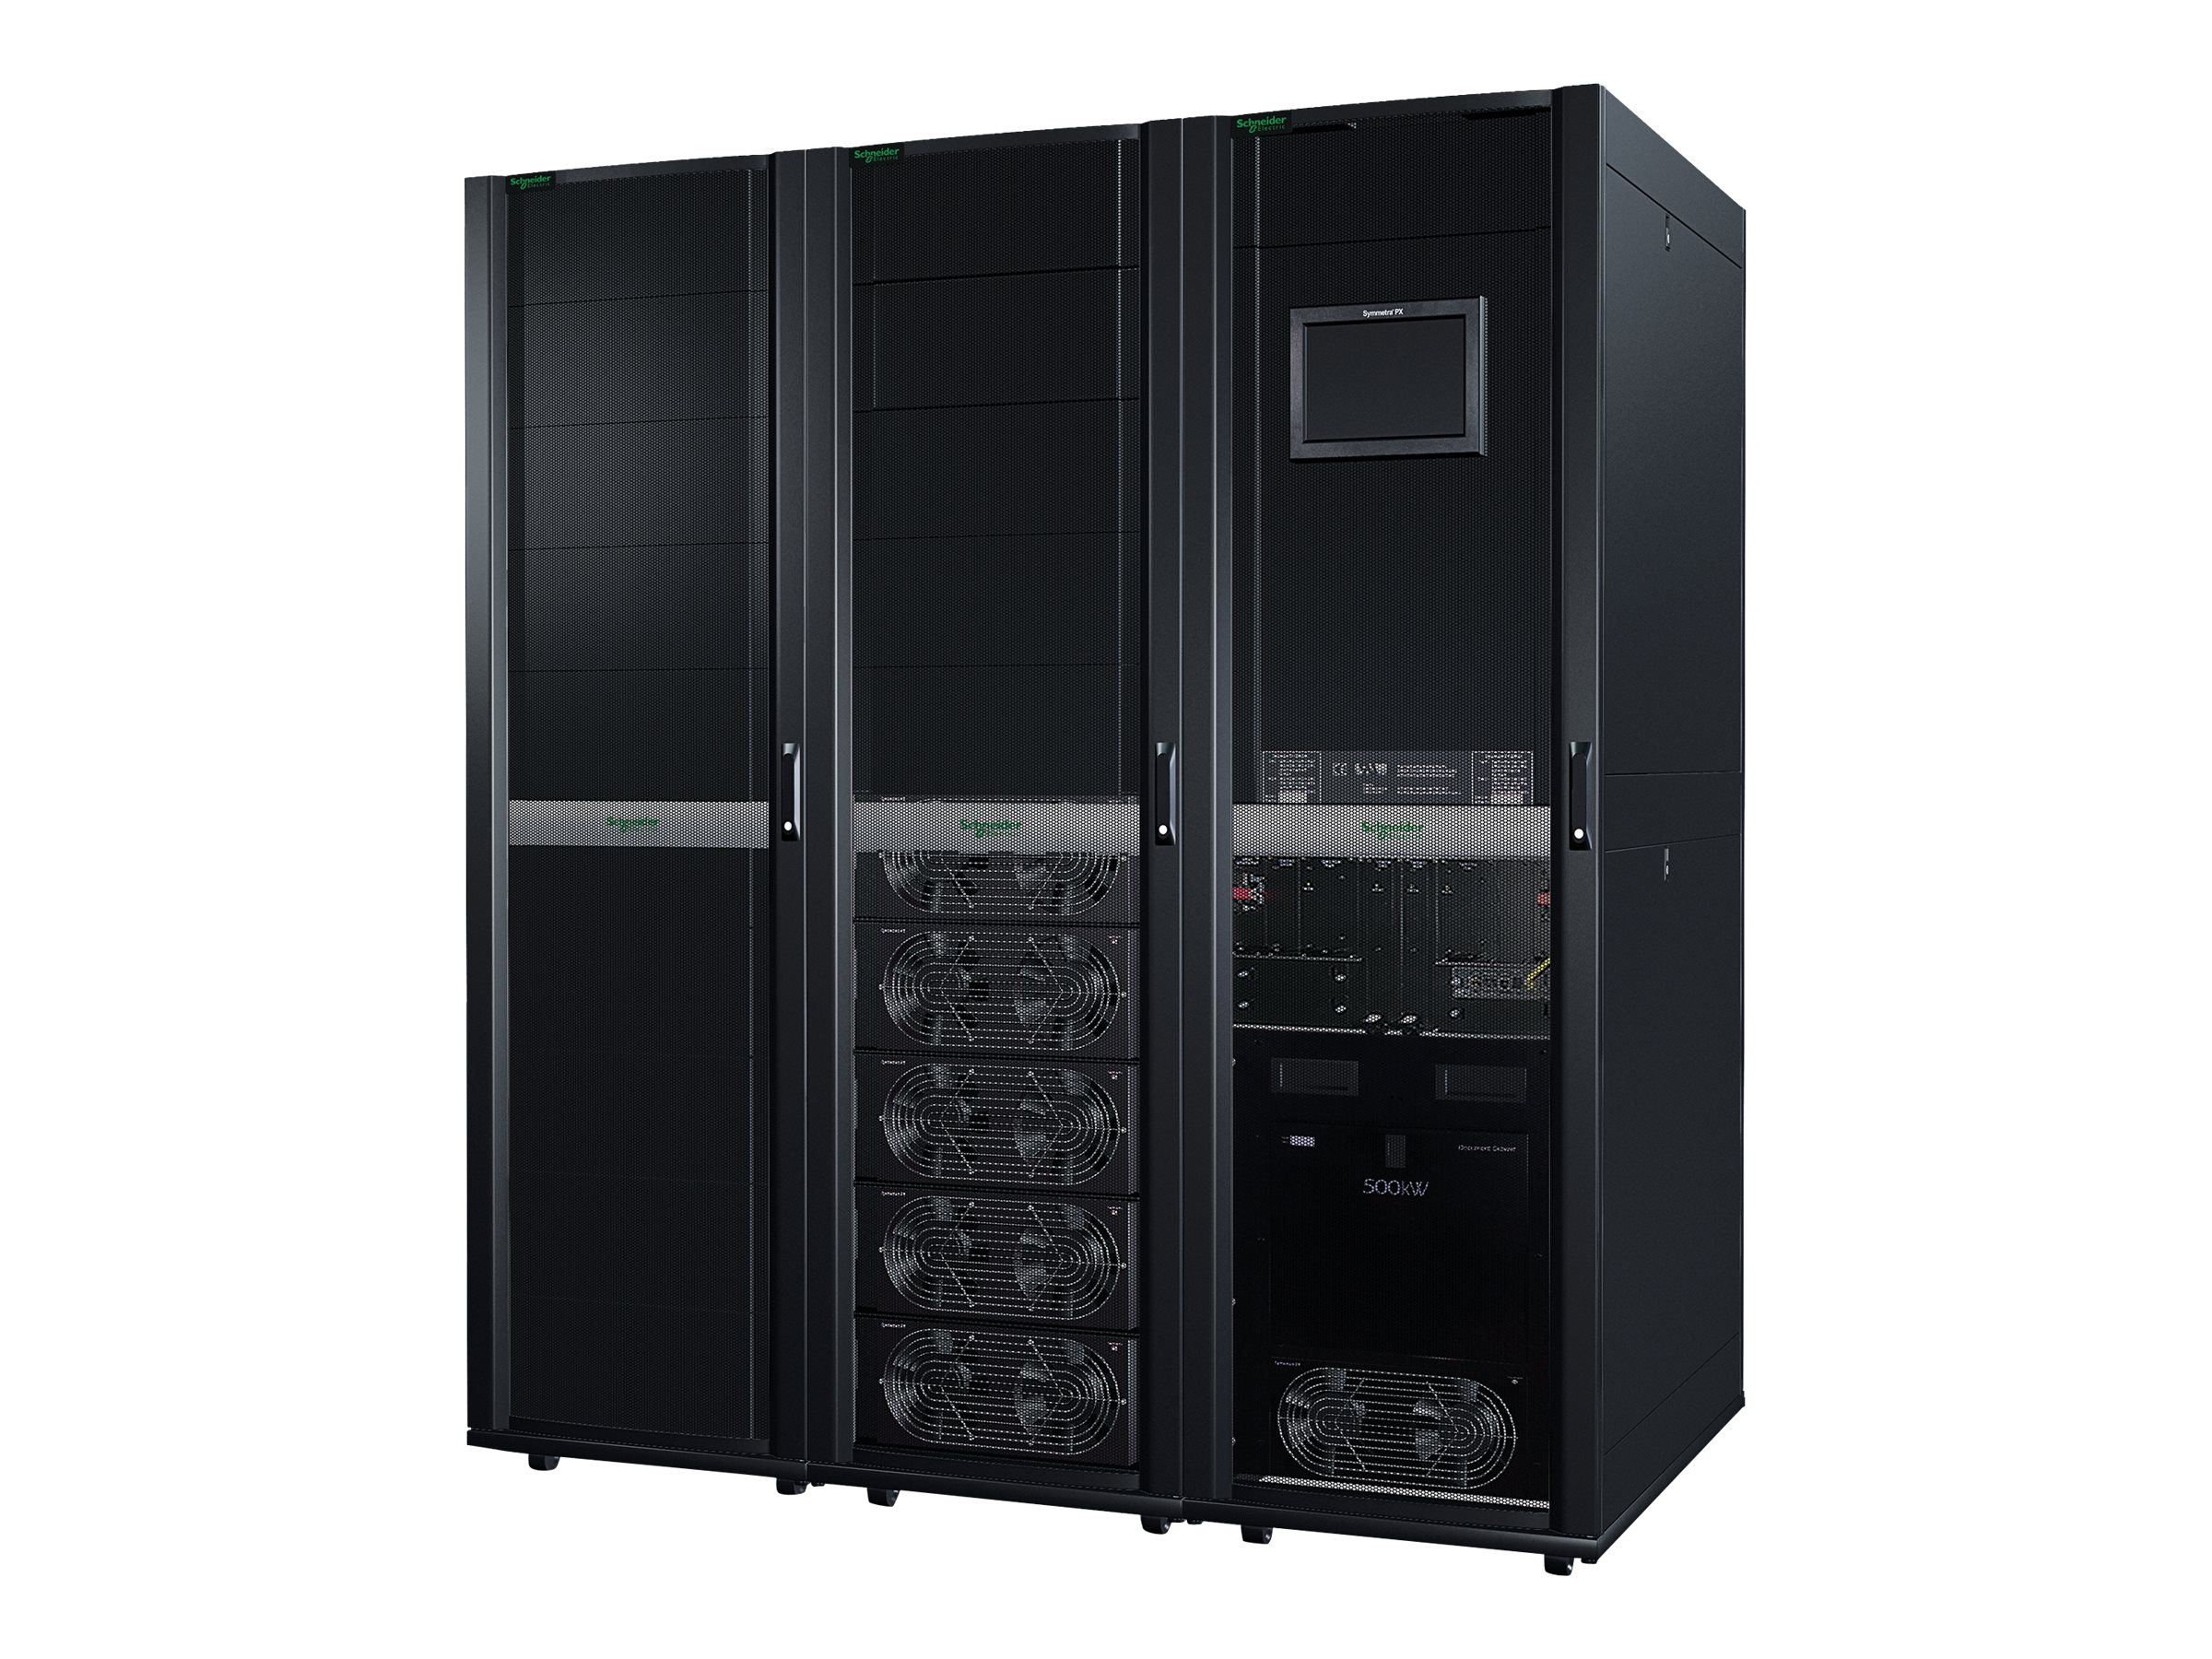 APC Symmetra PX 125kW, Scalable to 500kW, without Bypass, Distribution or Batteries, Parallel Capable, SY125K500D-NB, 14040775, Battery Backup/UPS